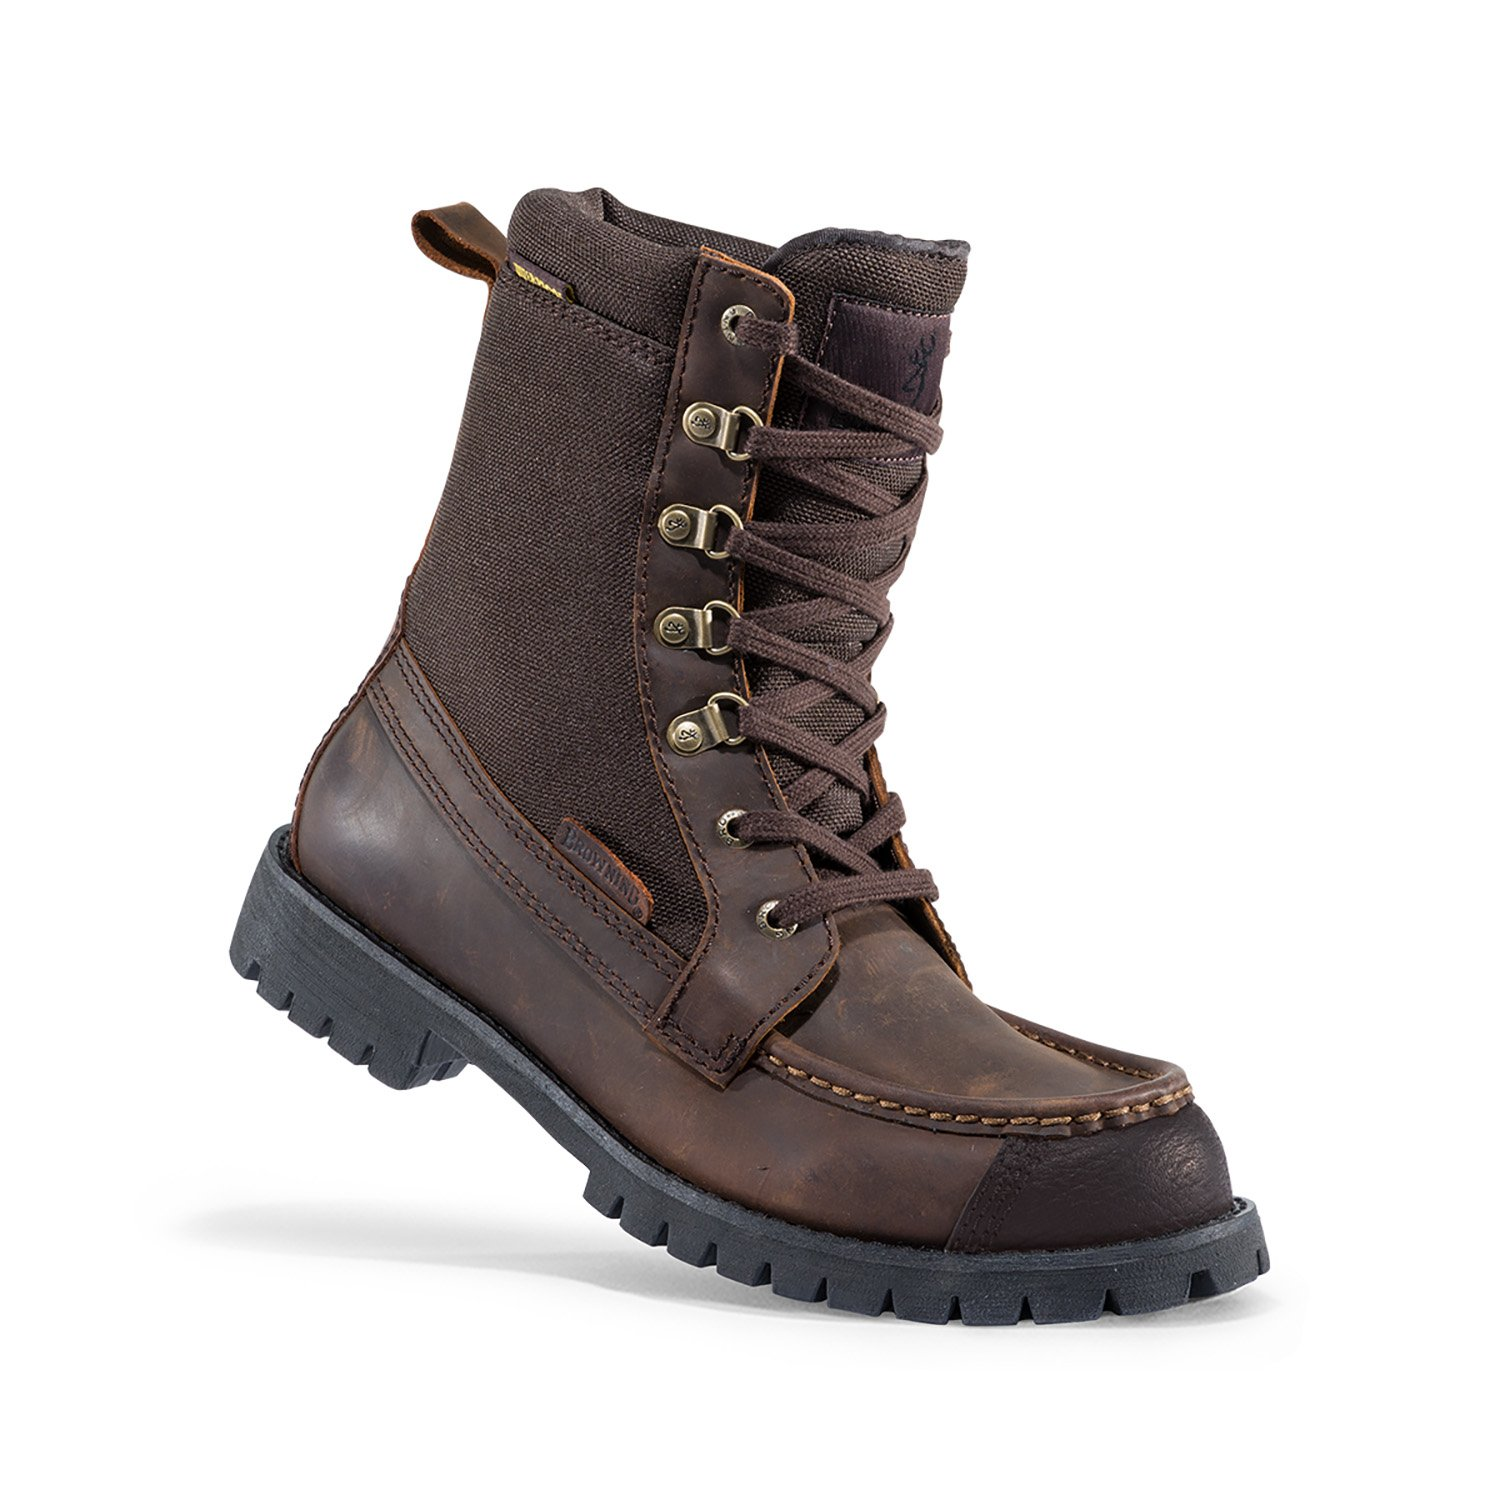 Browning Men's Featherweight Upland Boot, Bracken, Size 9.5 by Browning (Image #1)